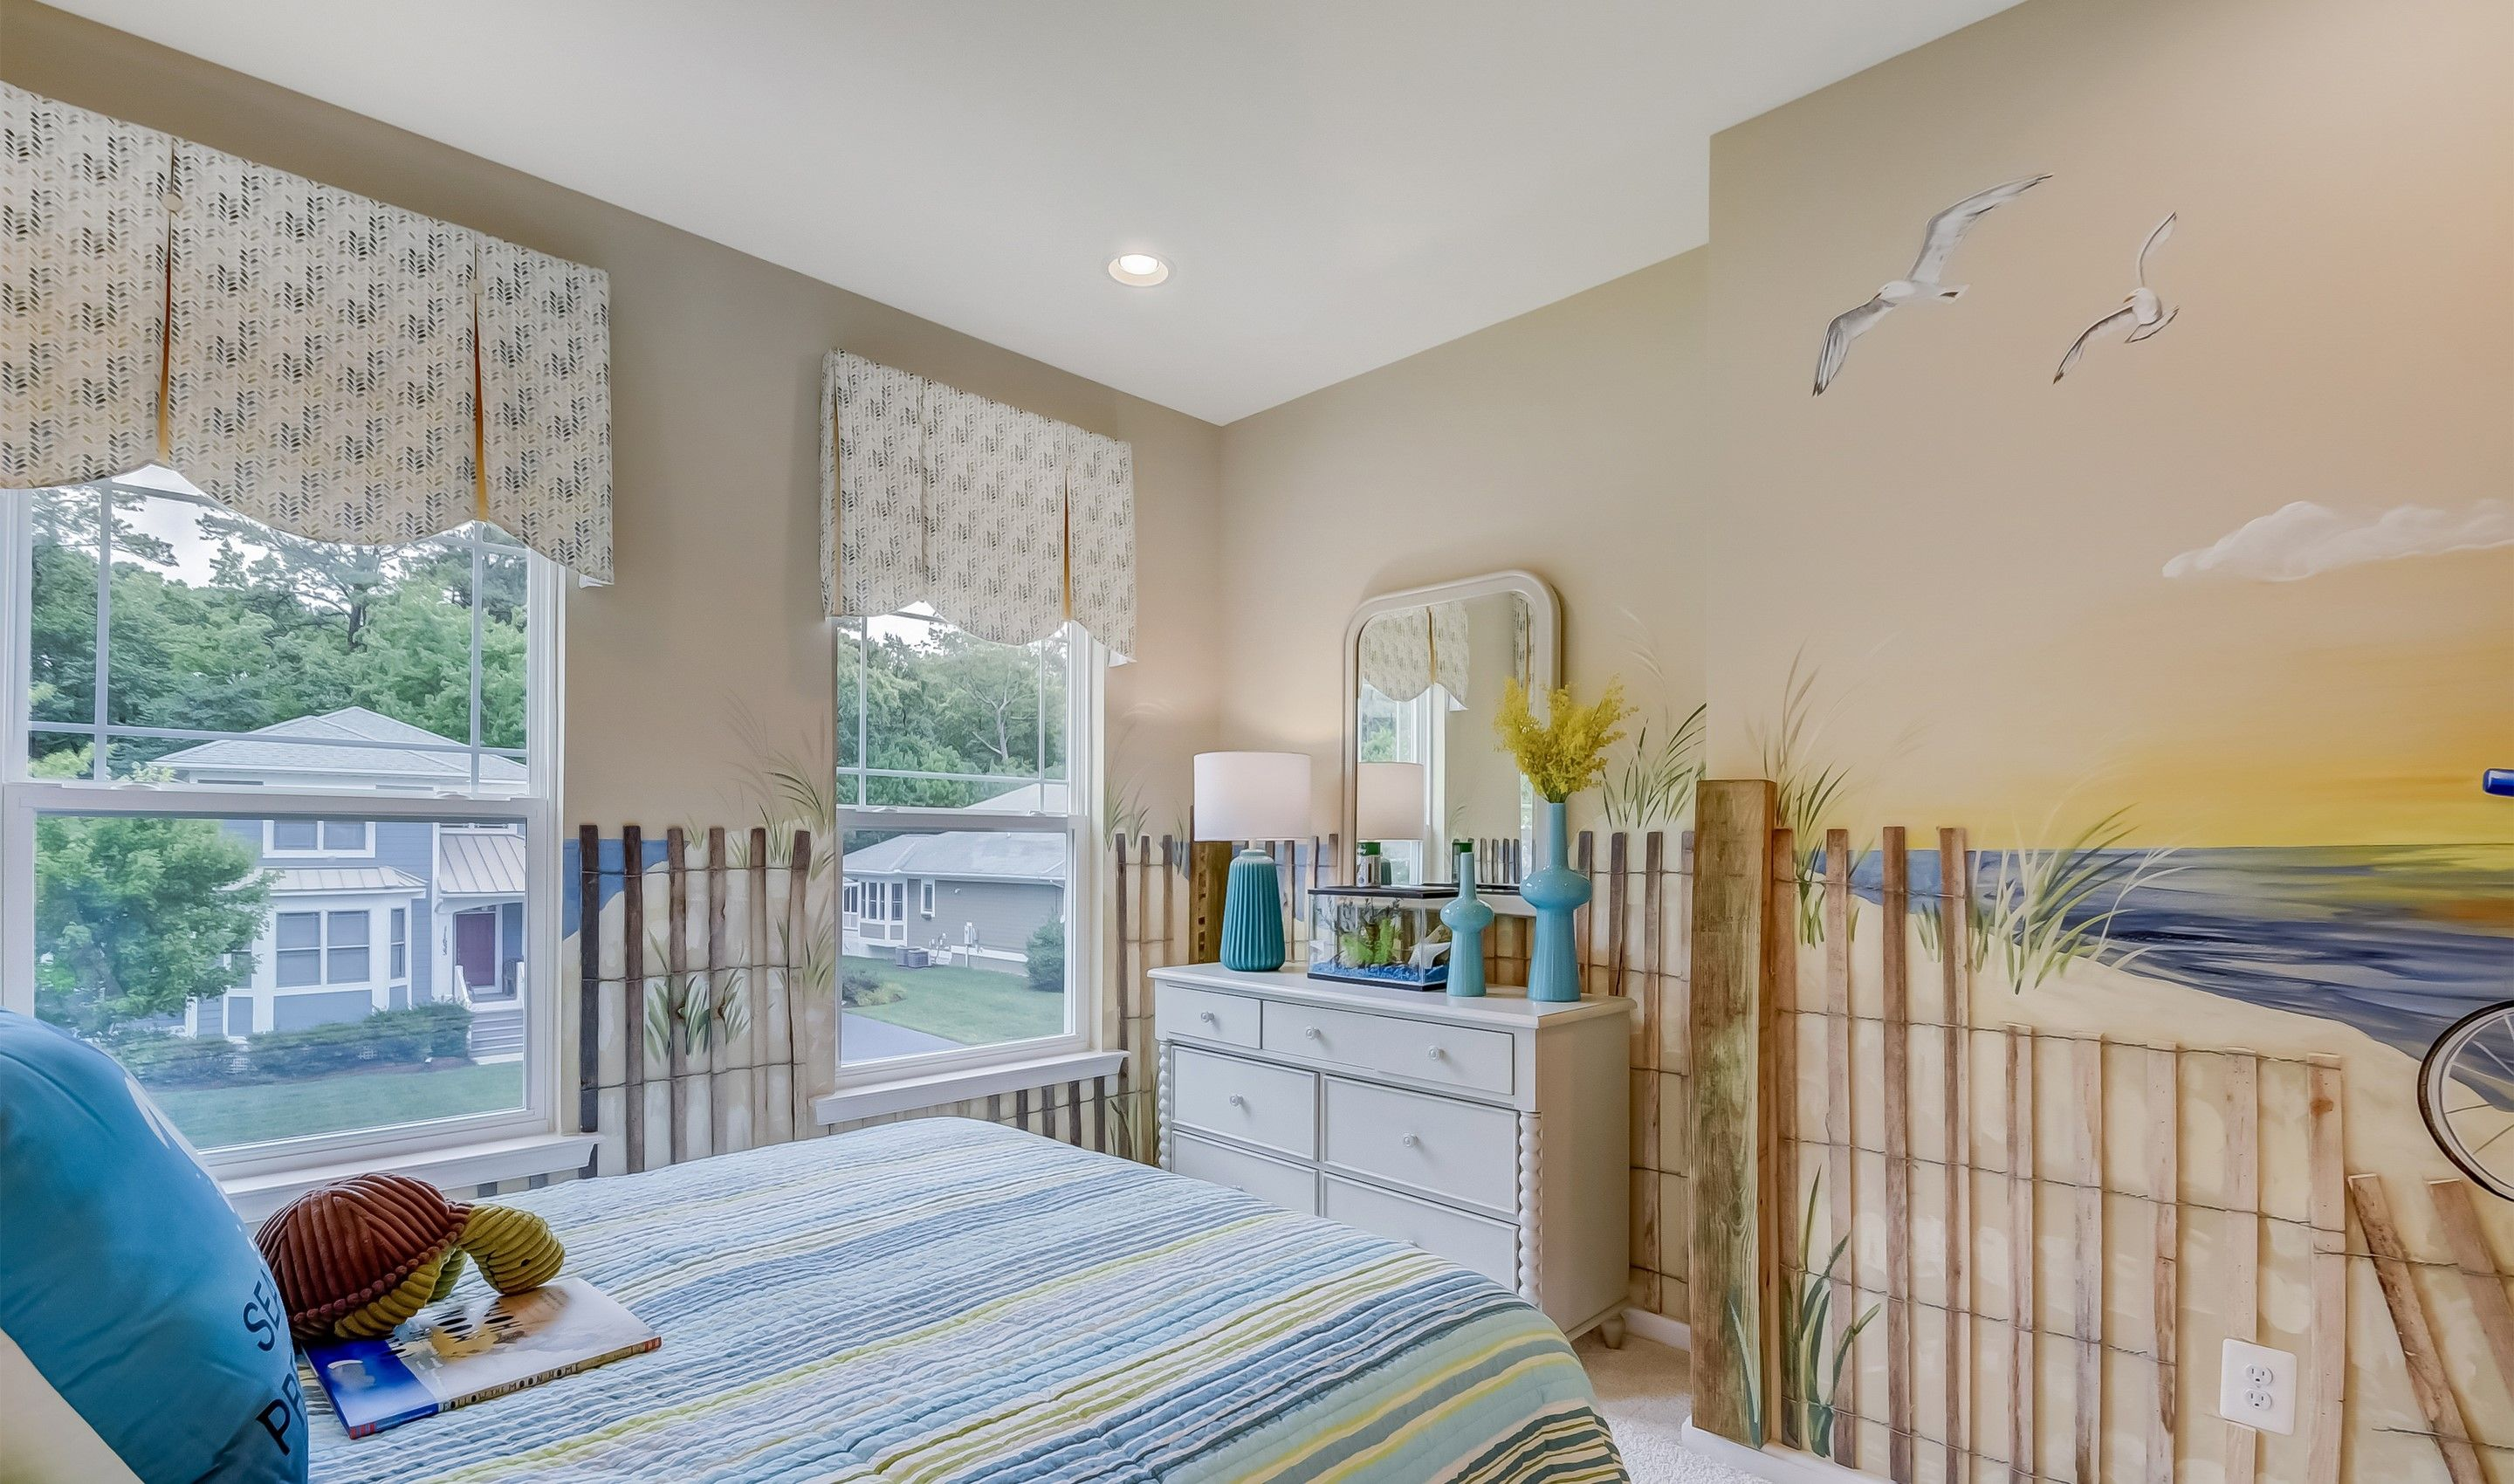 Bedroom featured in the Baltimore By K. Hovnanian® Homes in Ocean City, MD